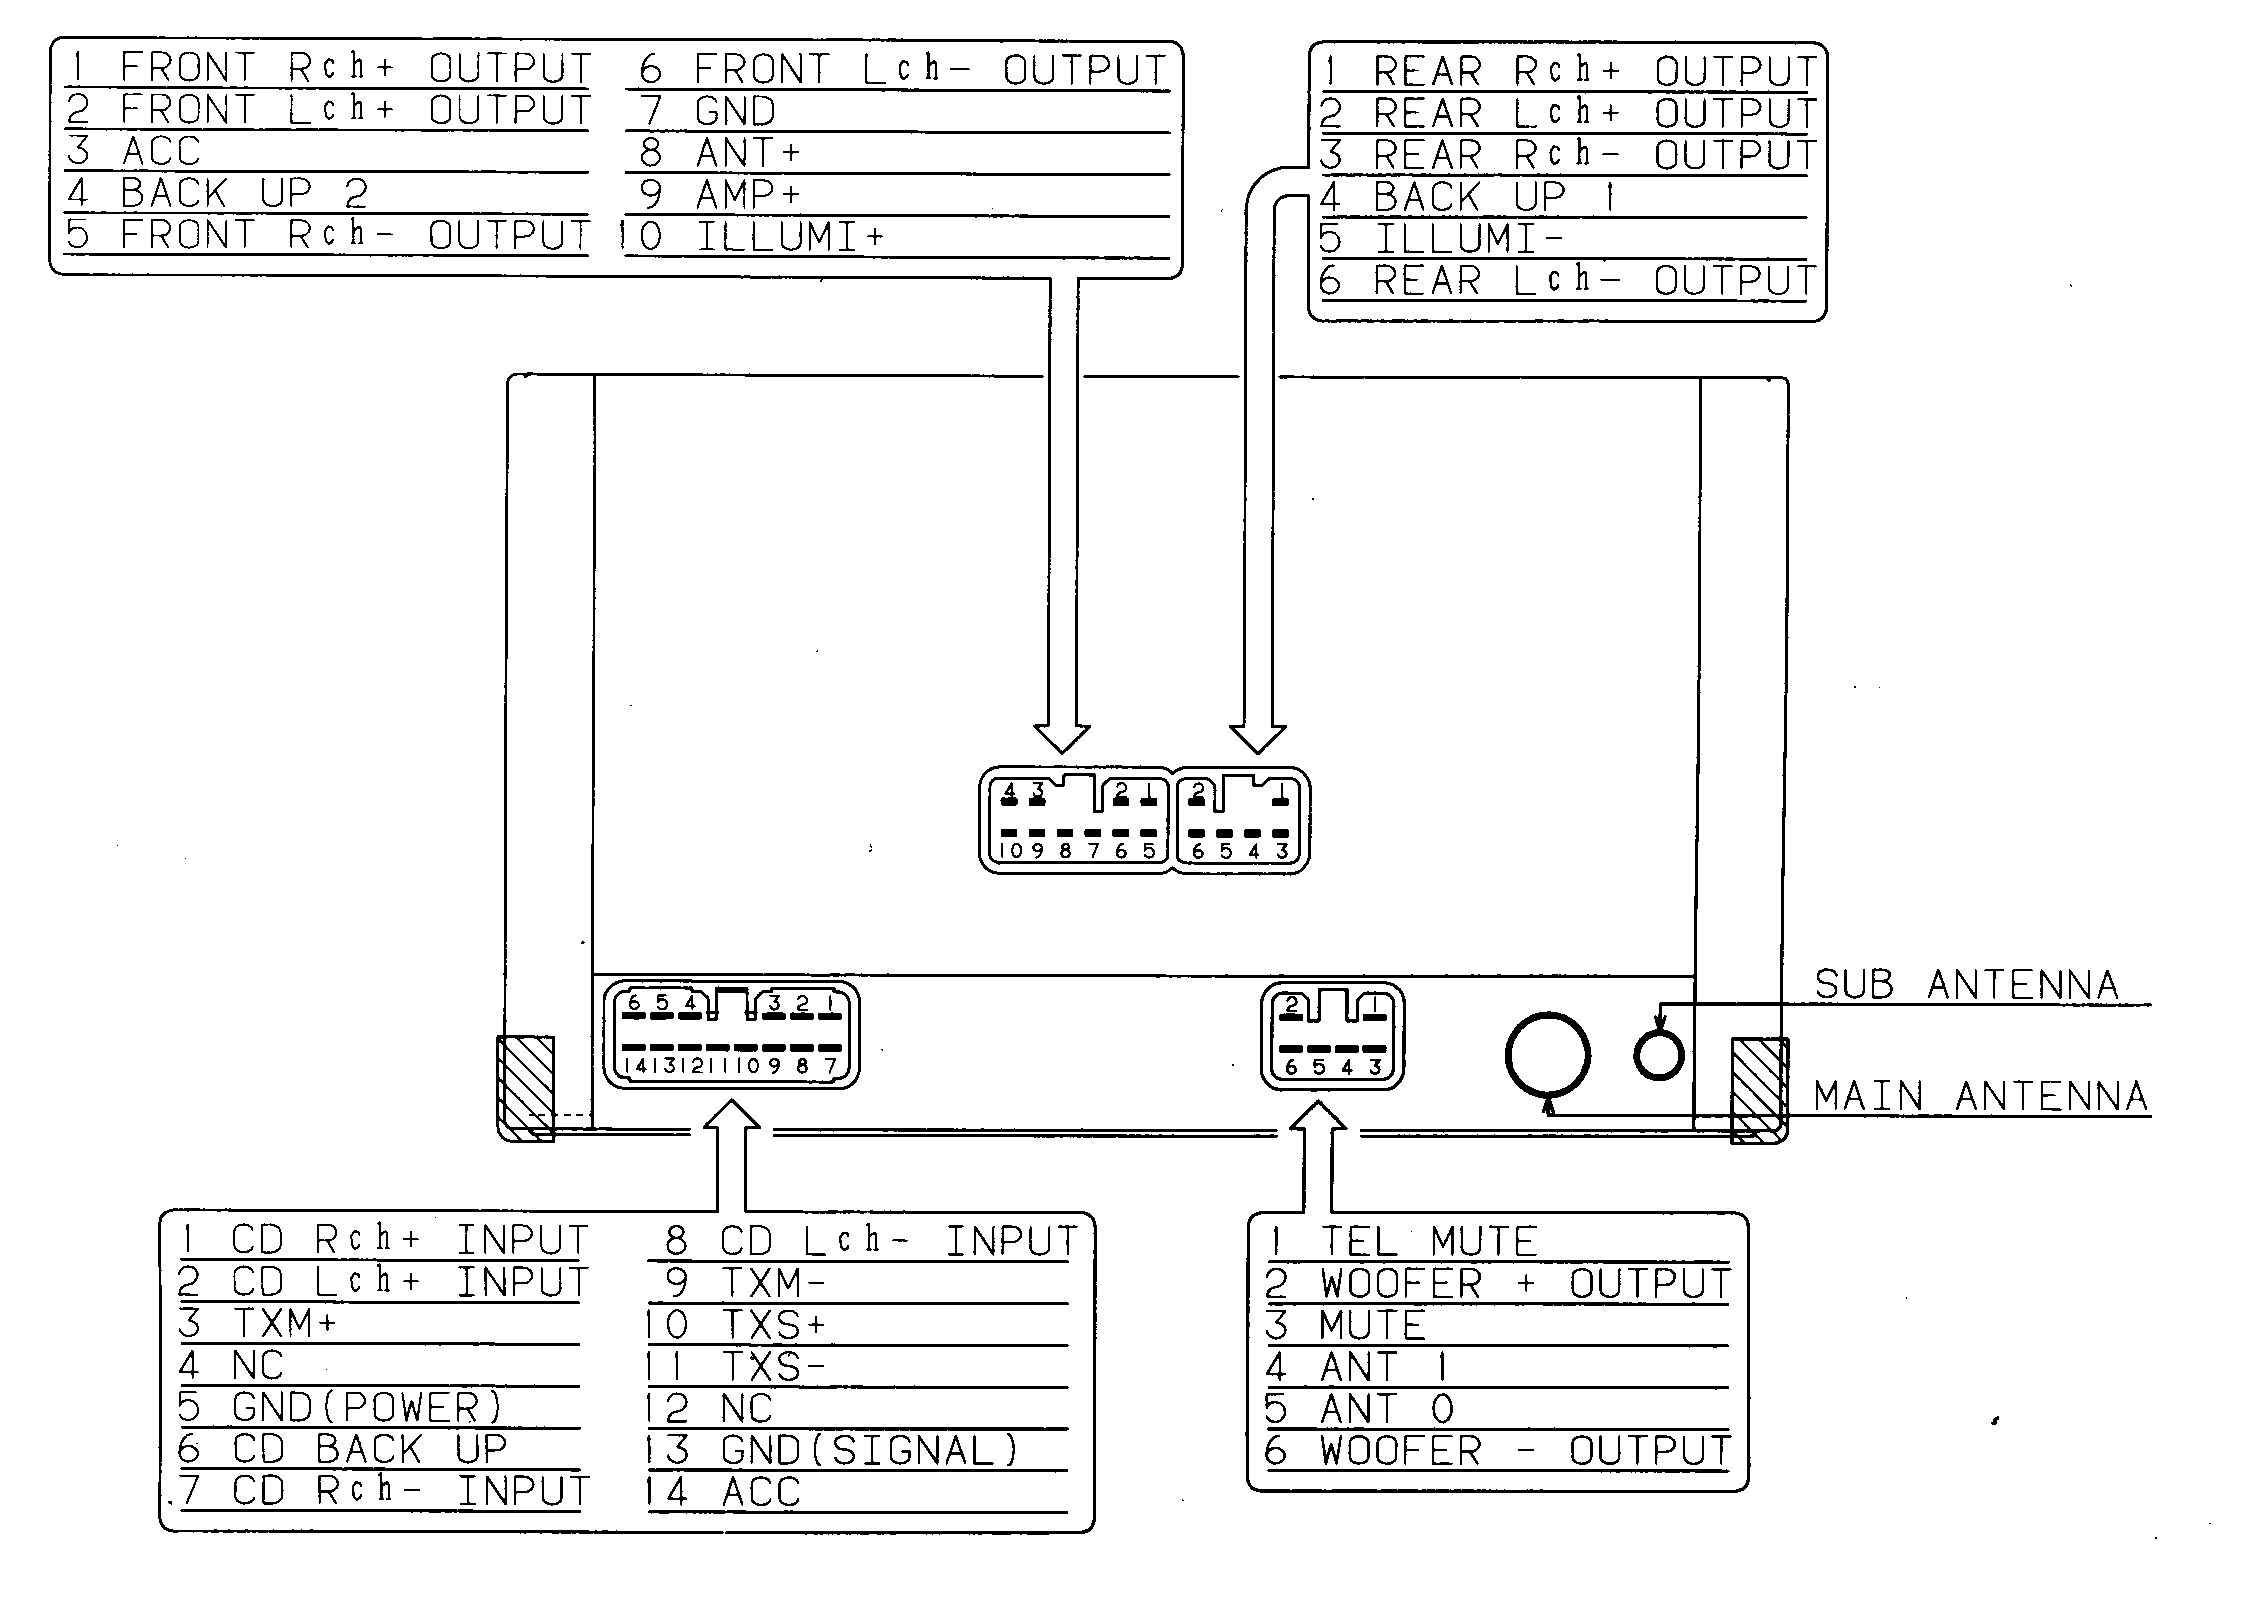 WireHarnessLexus121001 car audio wire diagram codes lexus factory car stereo repair car audio wiring diagram at creativeand.co